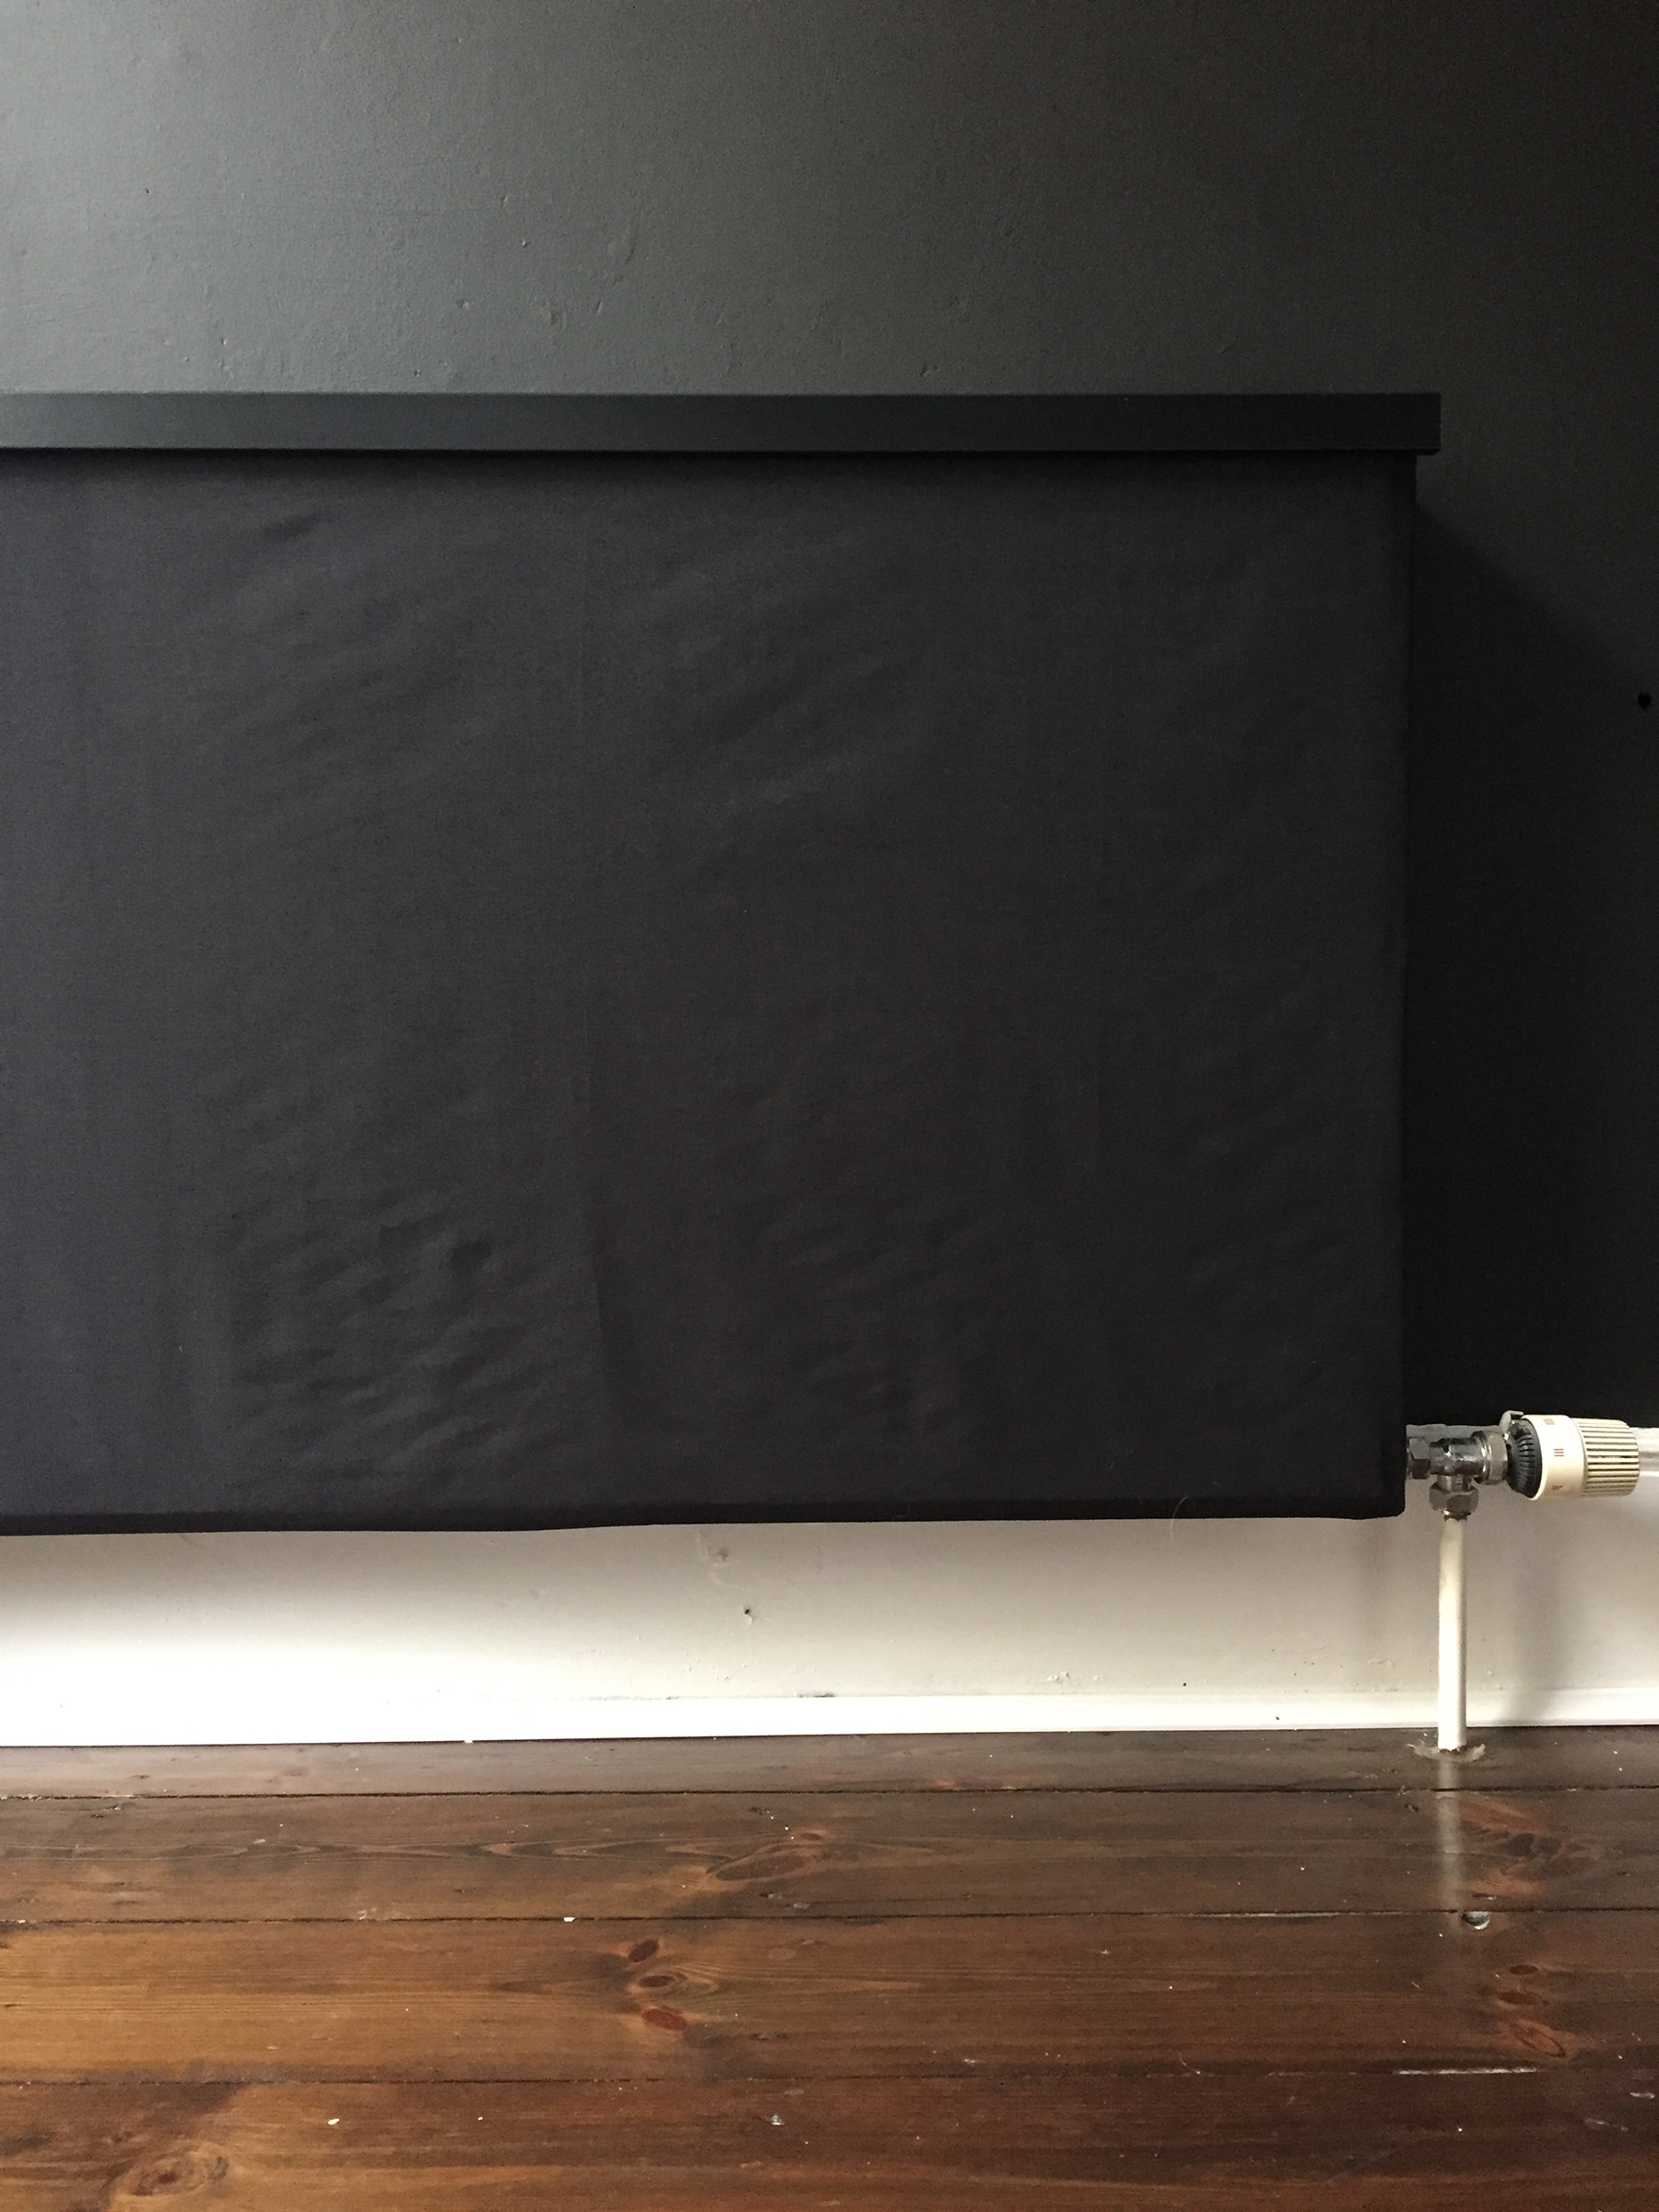 Preciously Me blog : One Room Challenge - DIY Radiator cover